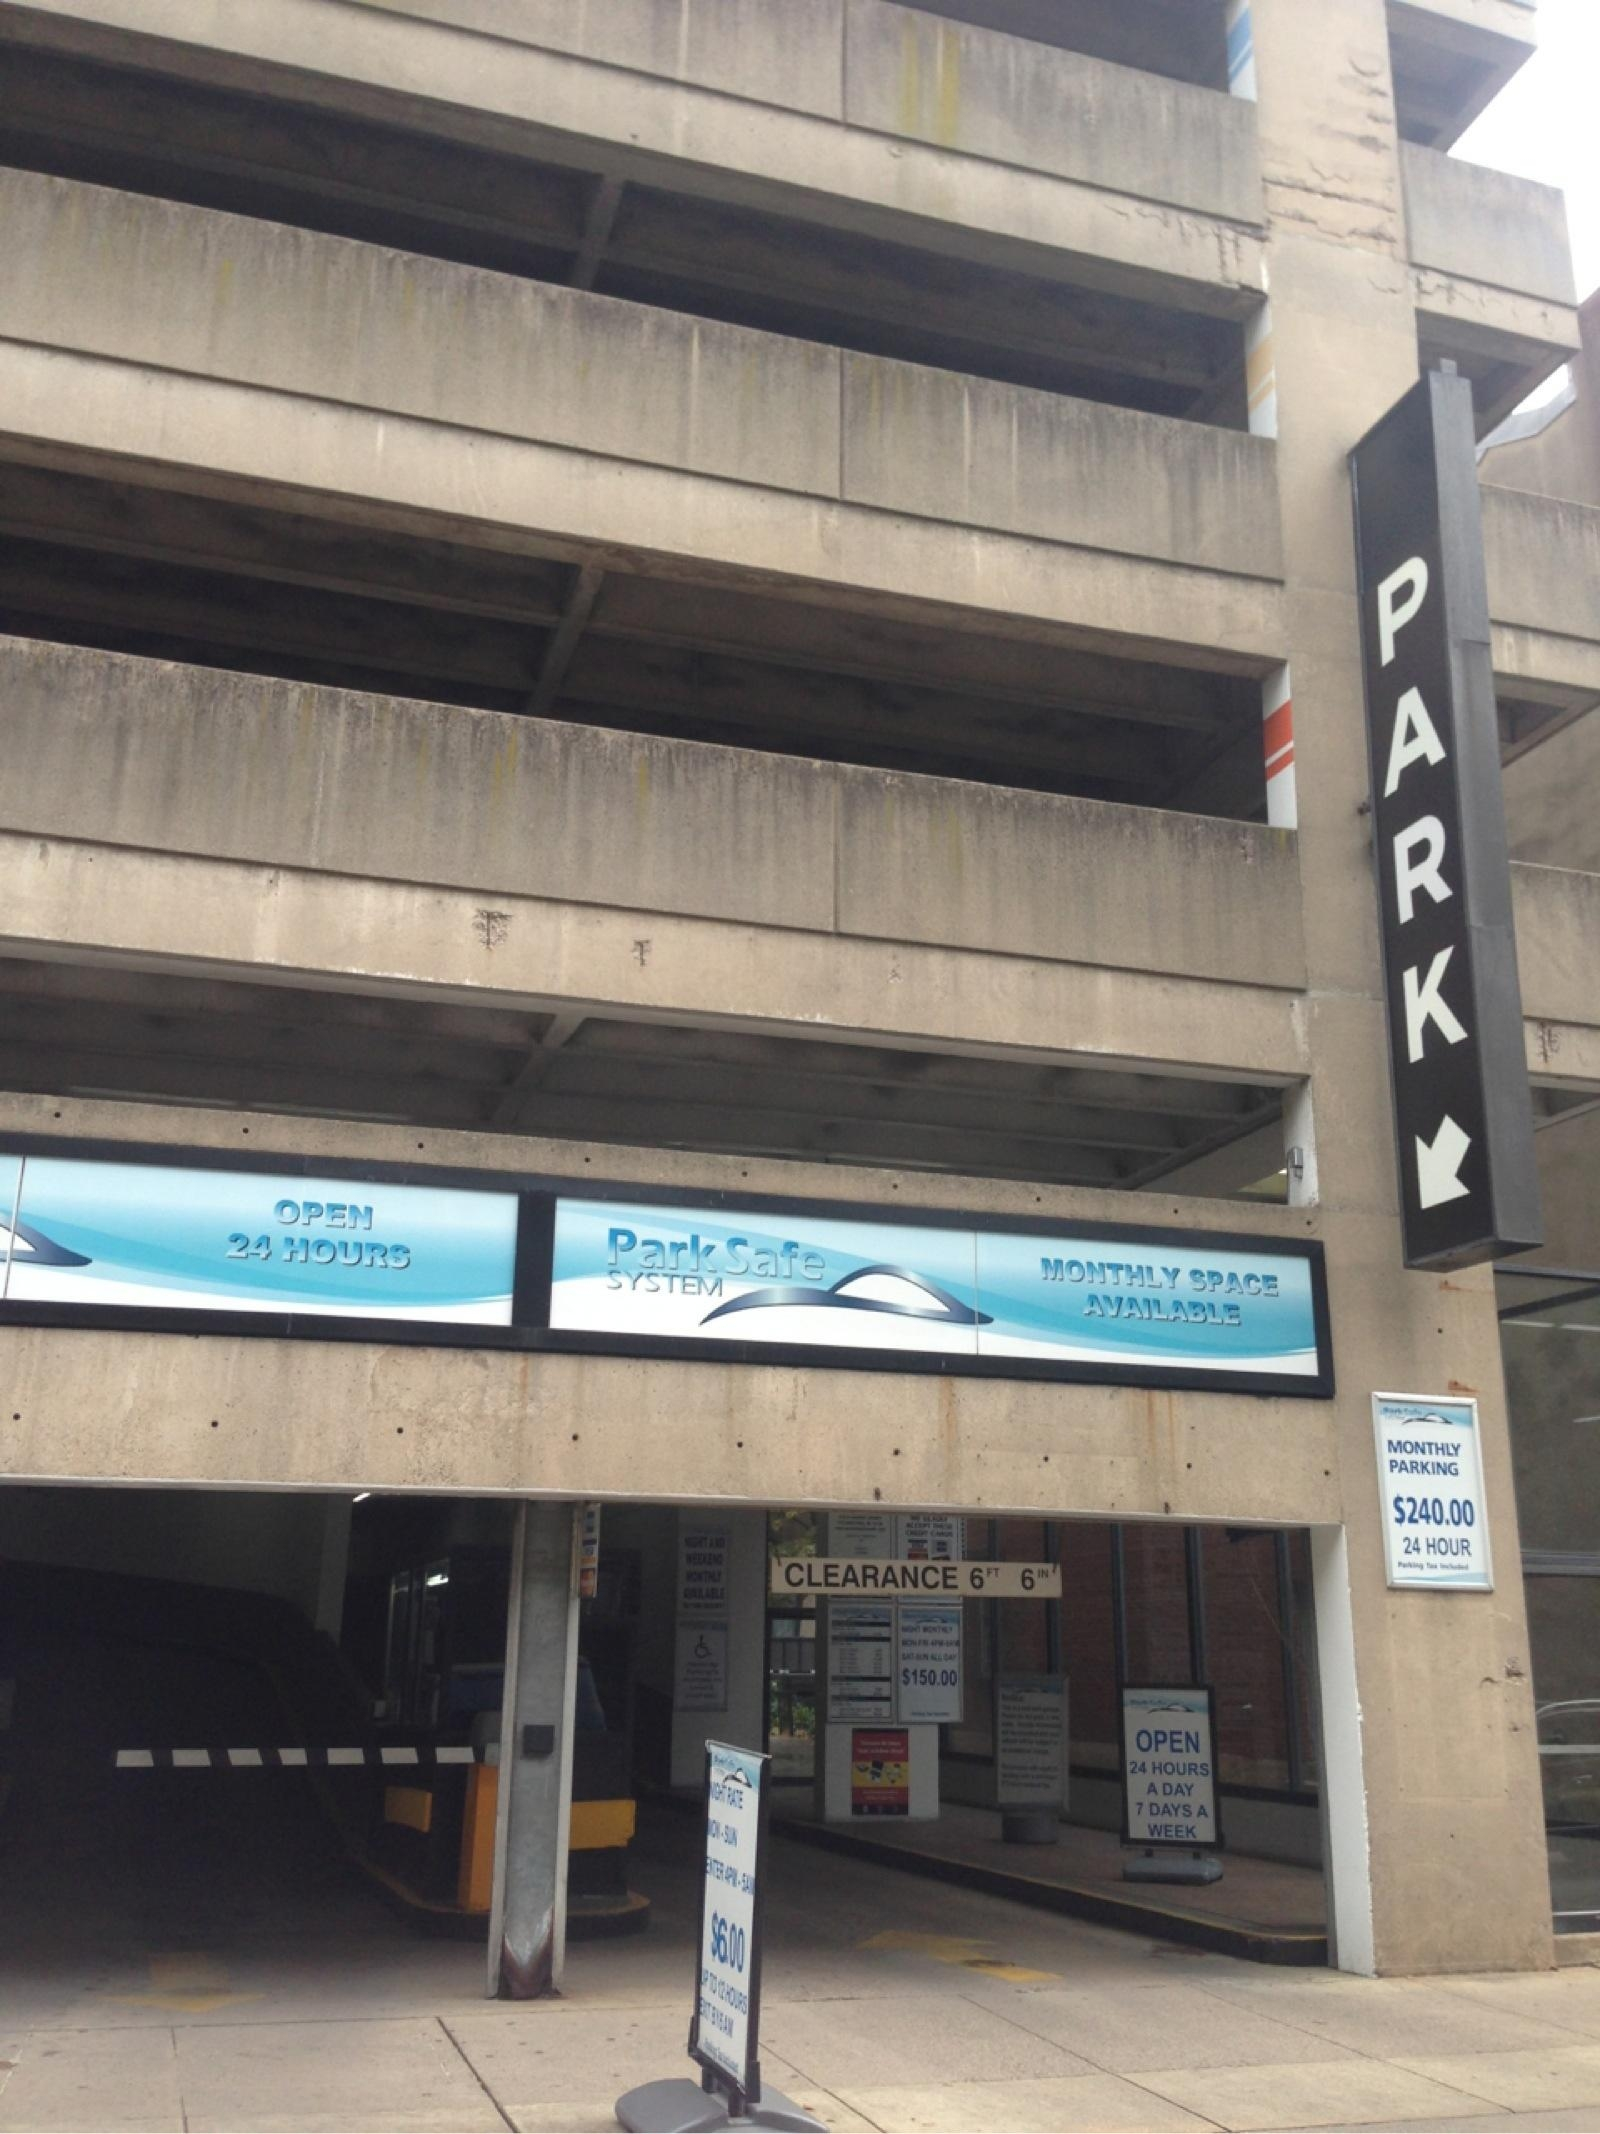 618 34 market st garage parking in philadelphia parkme for Garage ad st coulomb